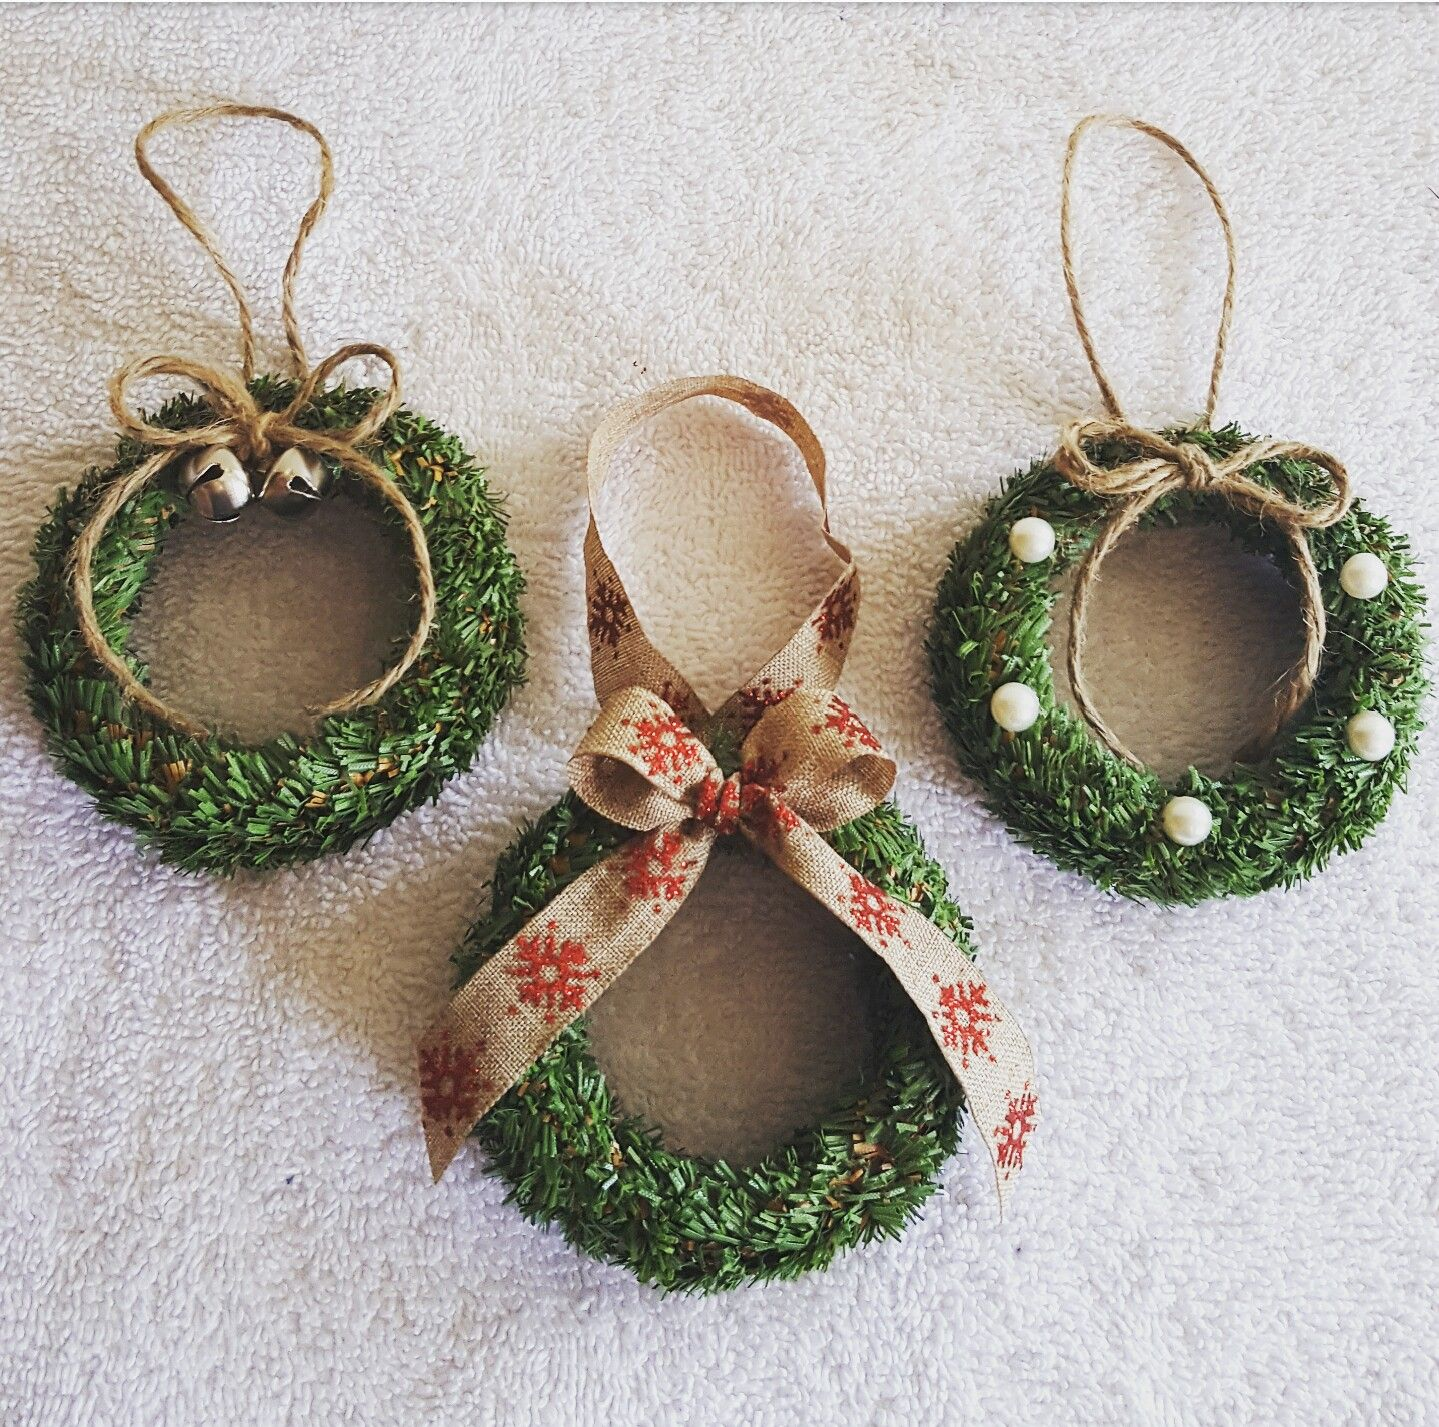 Mason Jar Lid Wreath Ornaments Jar Lid Crafts Diy Christmas Ornaments Christmas Crafts